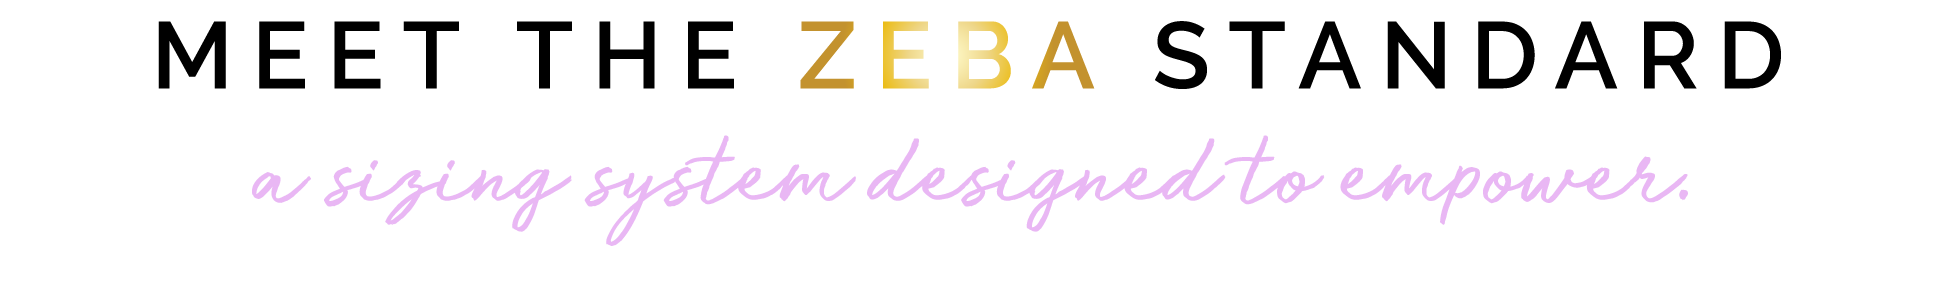 zeba-sizing-standards.png